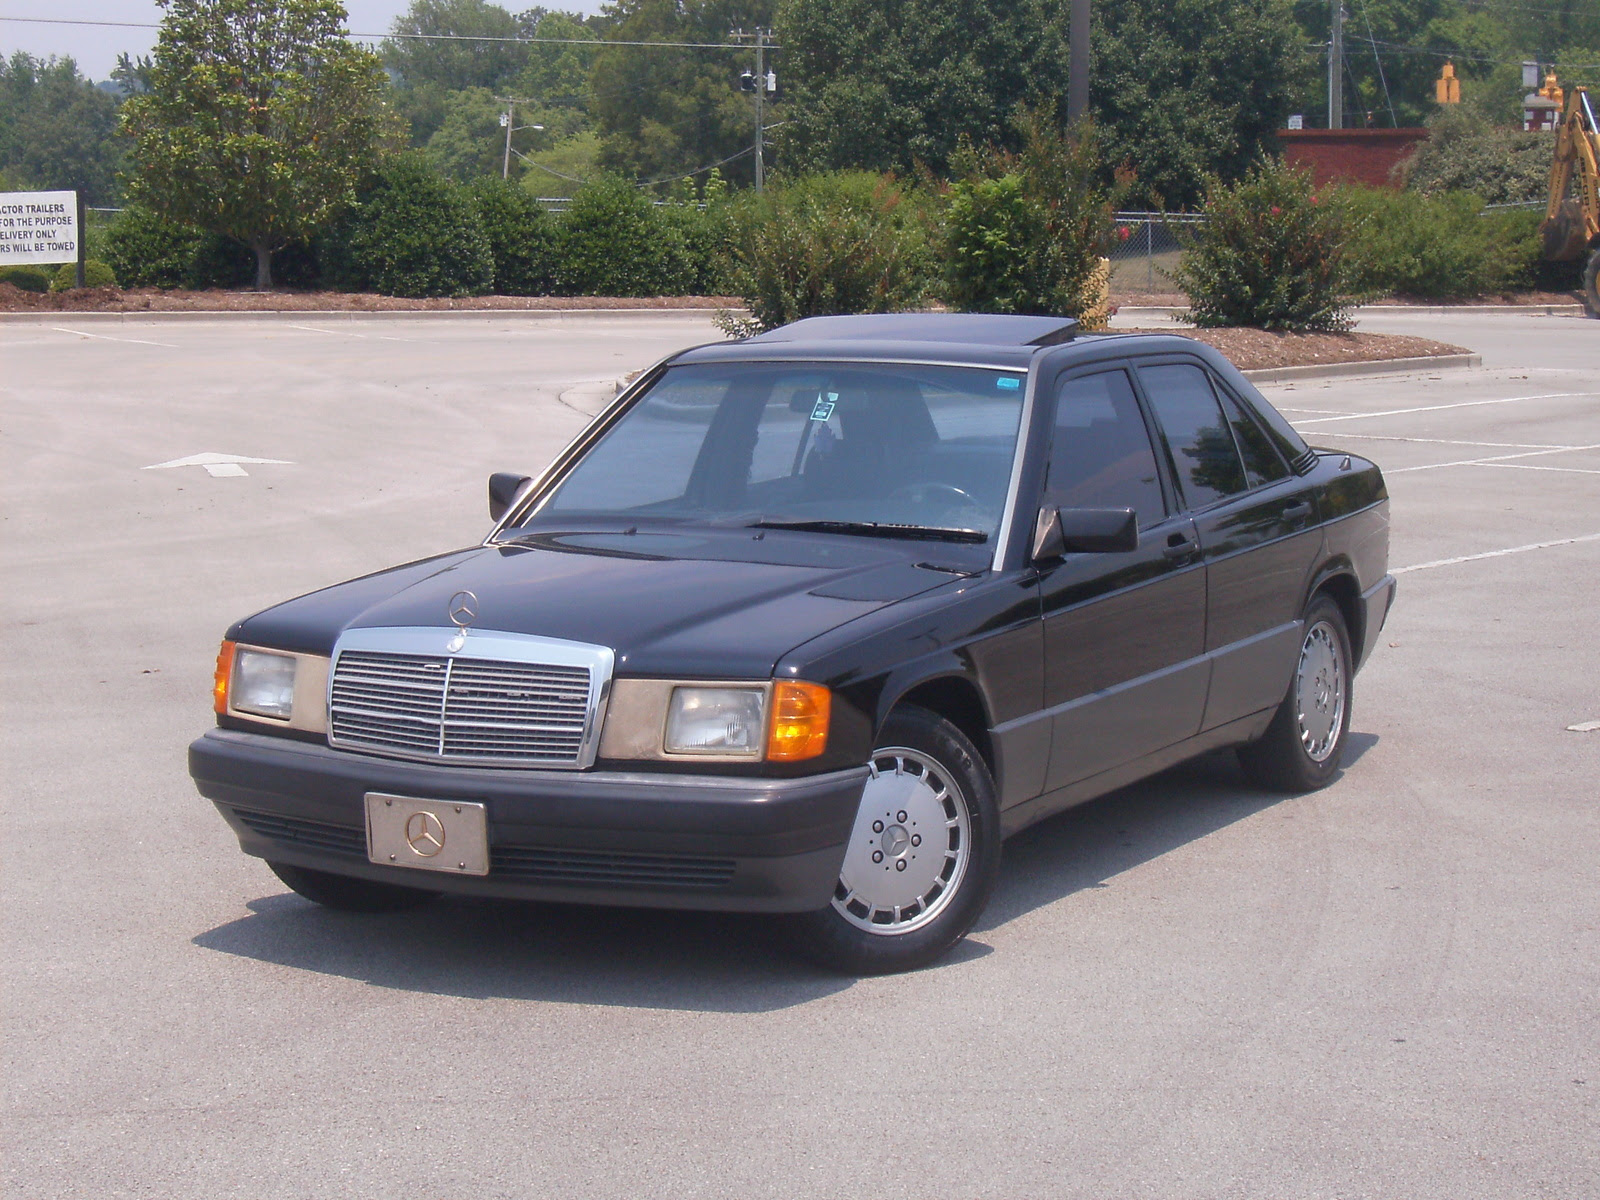 1993 Mercedes-Benz 190-Class - Other Pictures - CarGurus